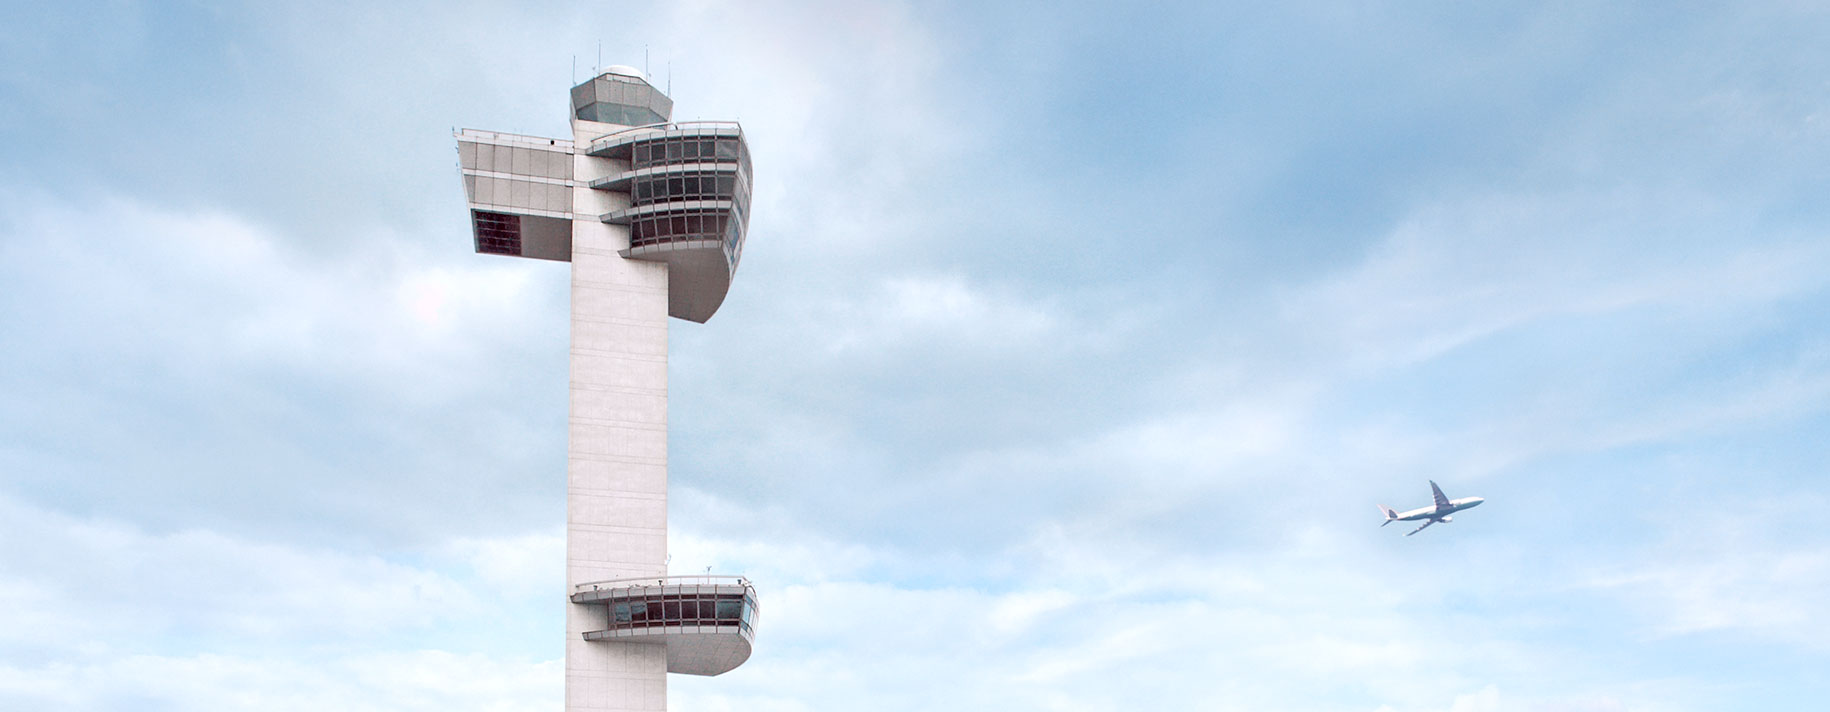 J. F. Kennedy International Airport Control Tower